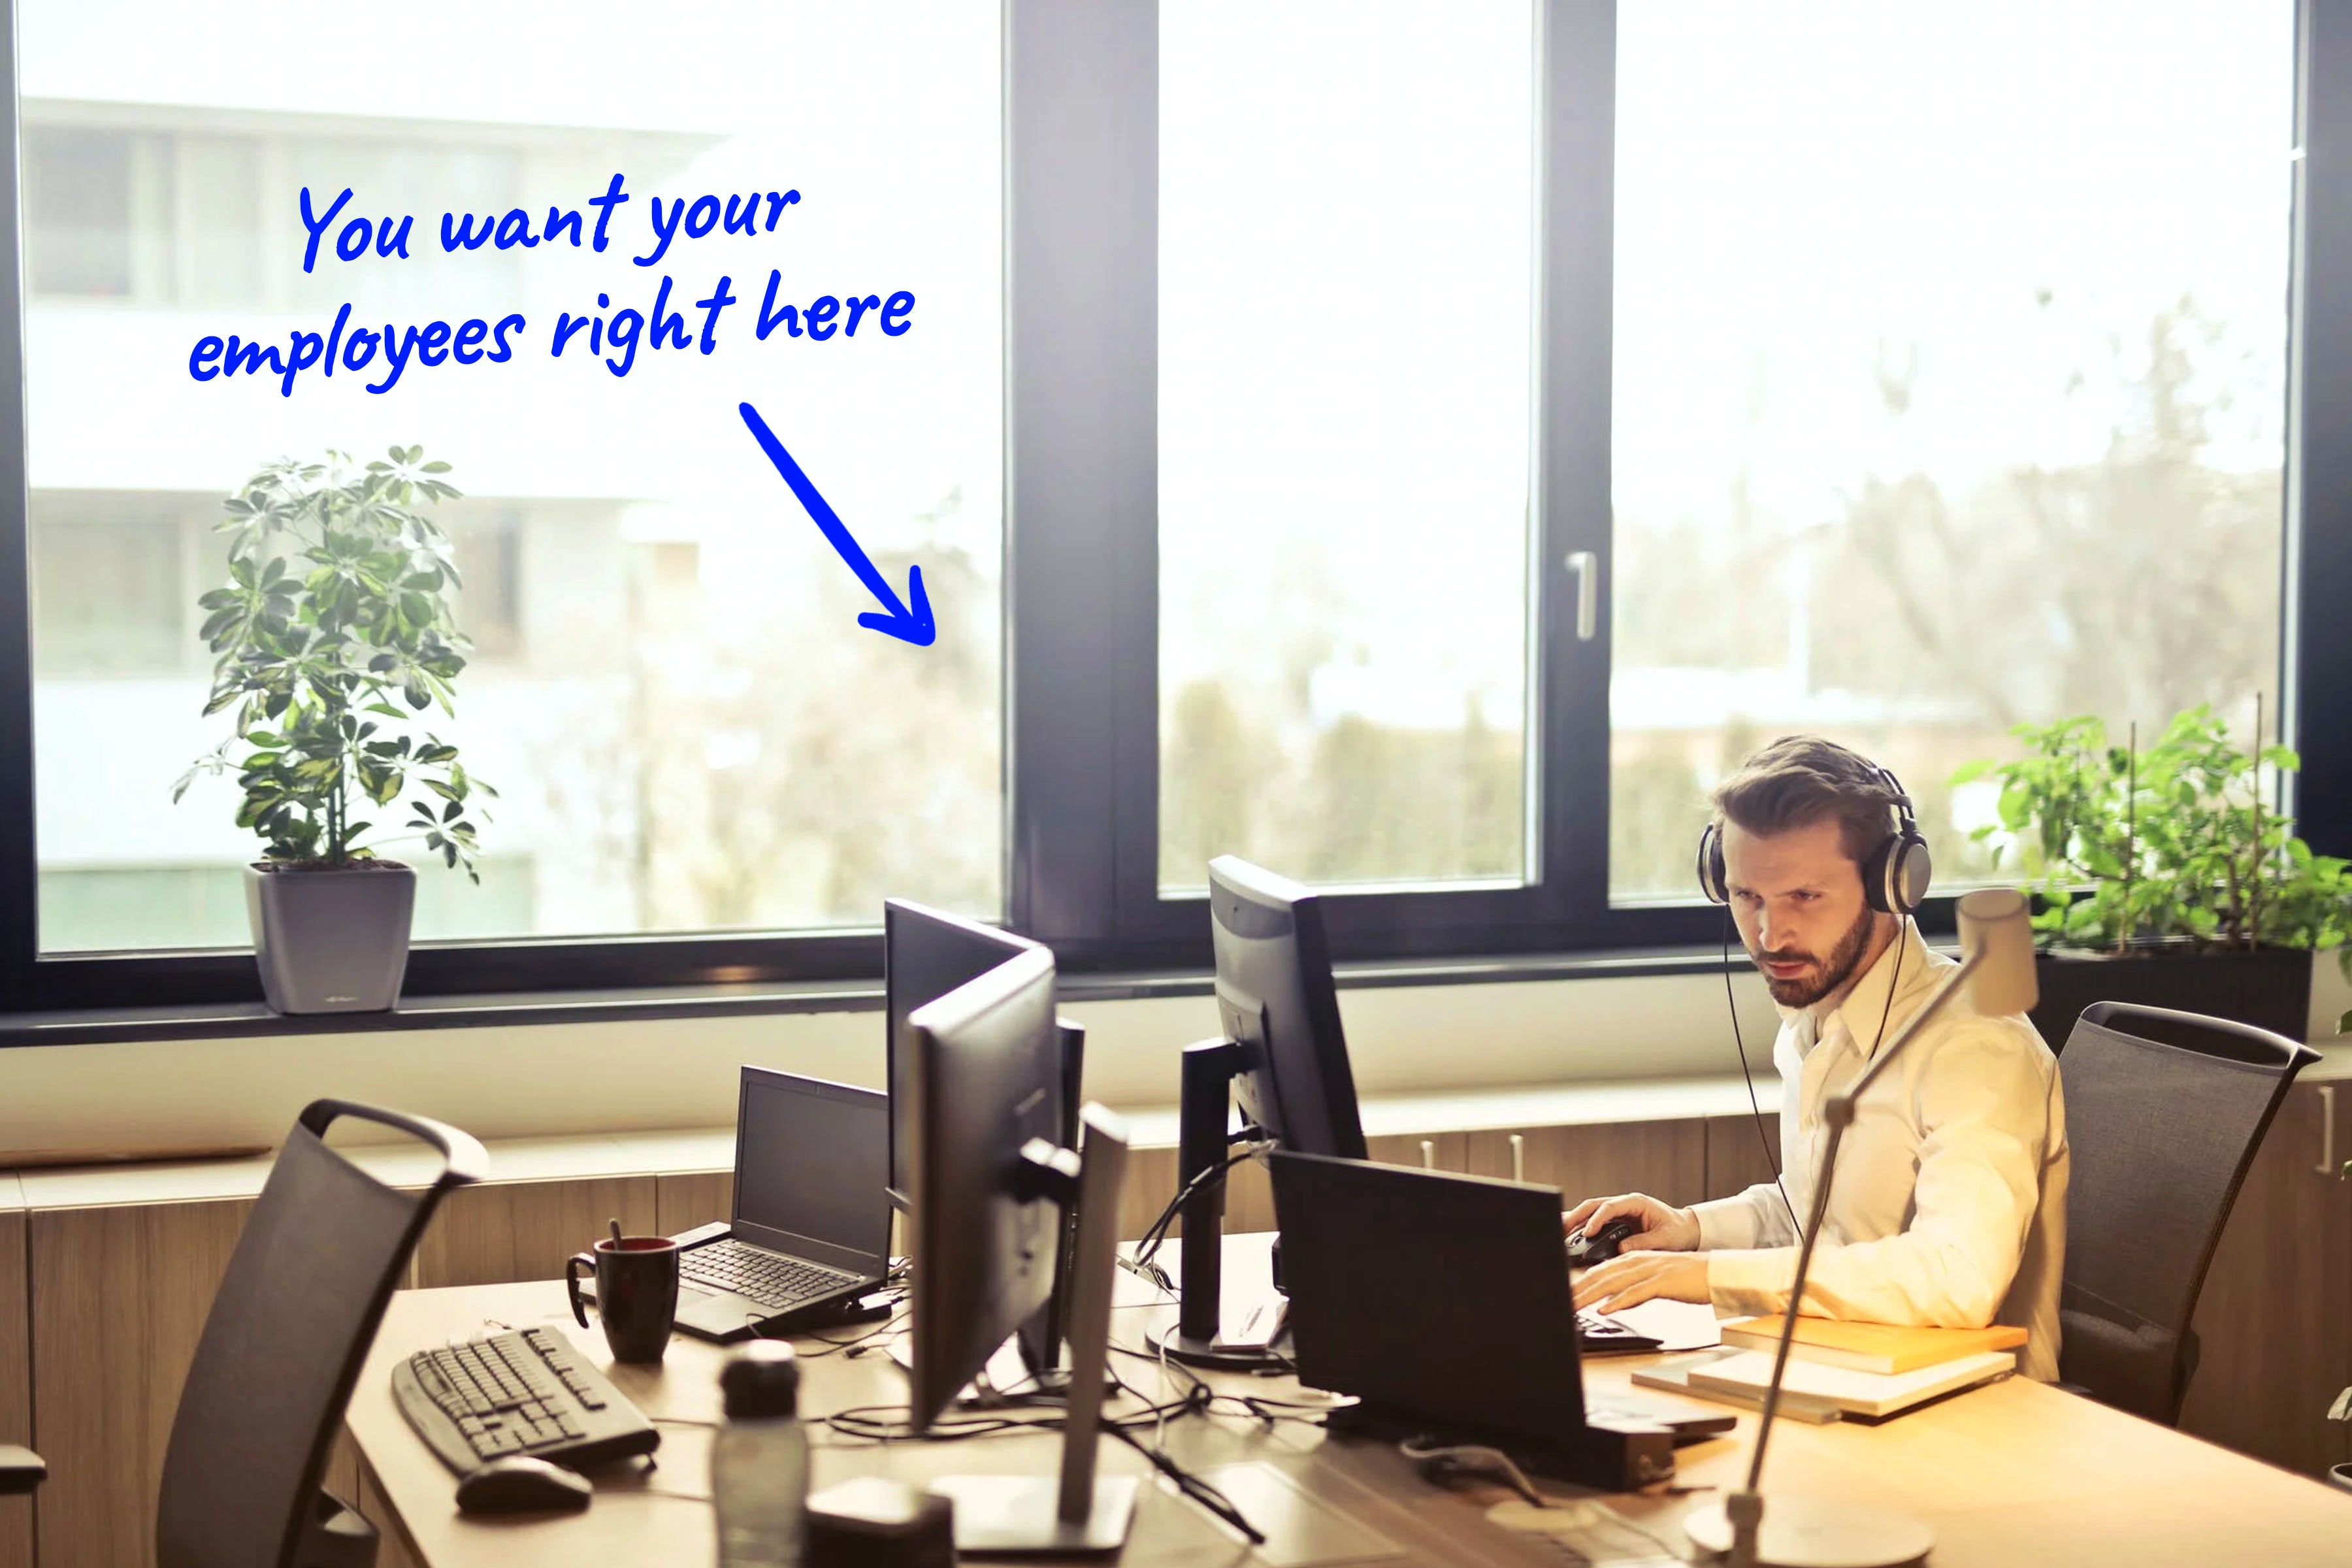 customer support team member working in an office